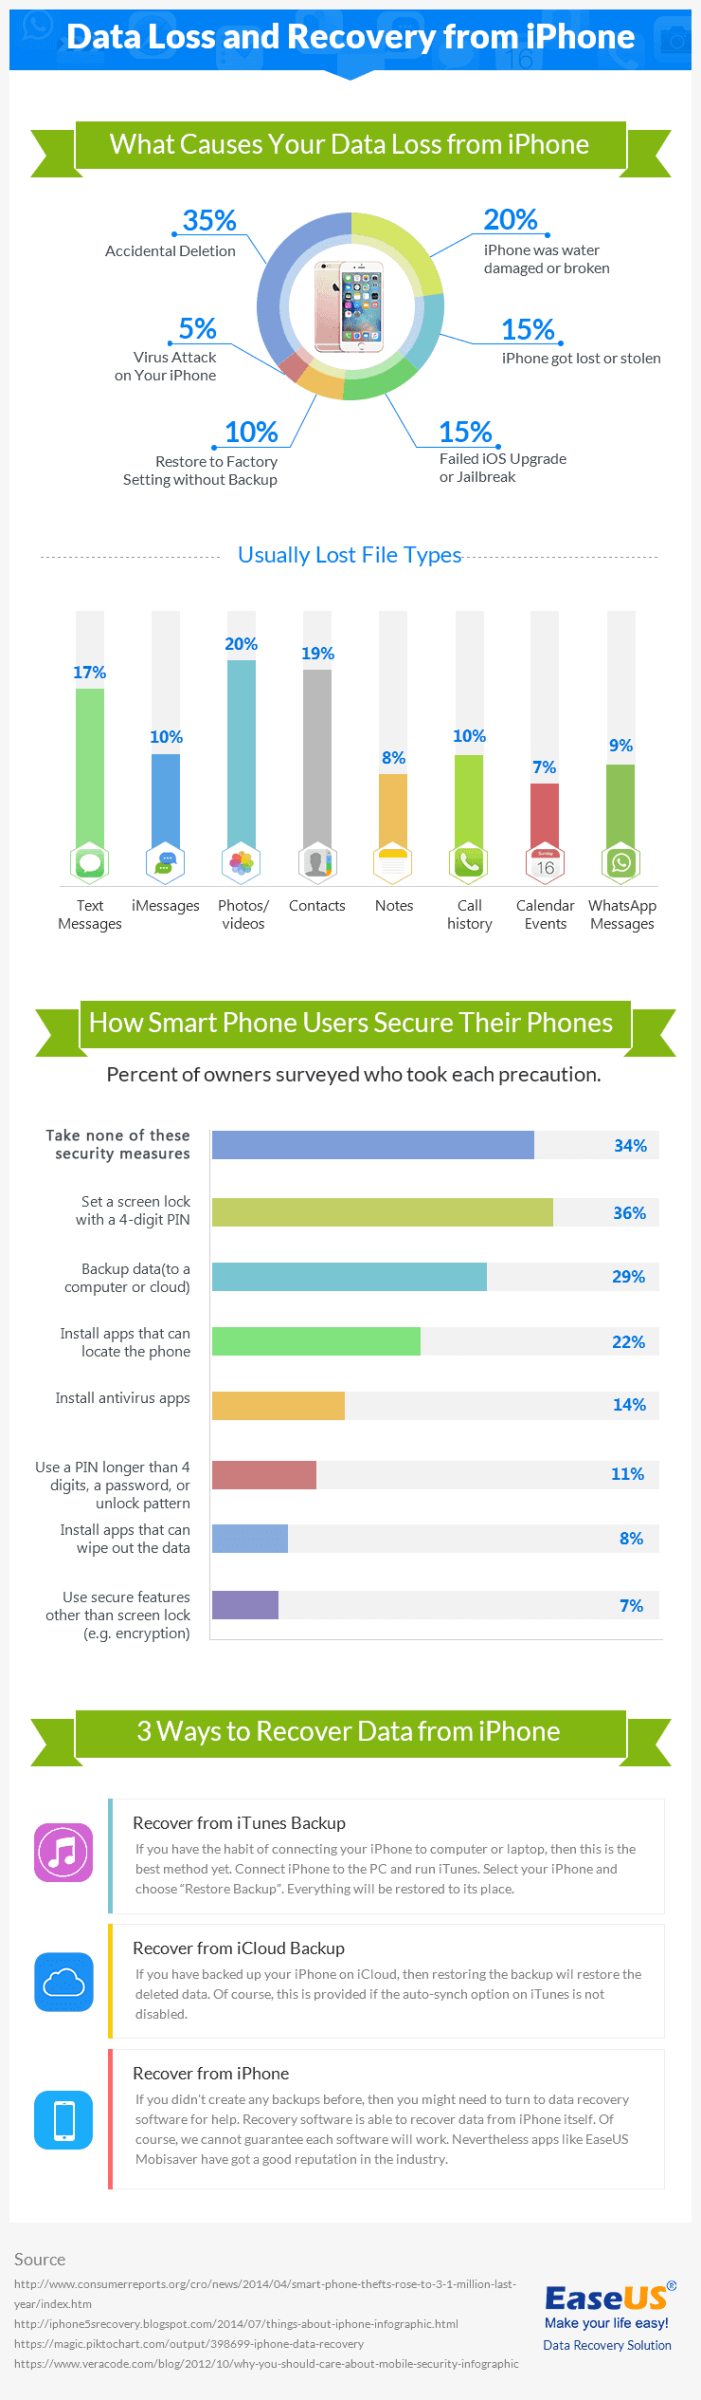 Infographic for iPhone data loss and recovery